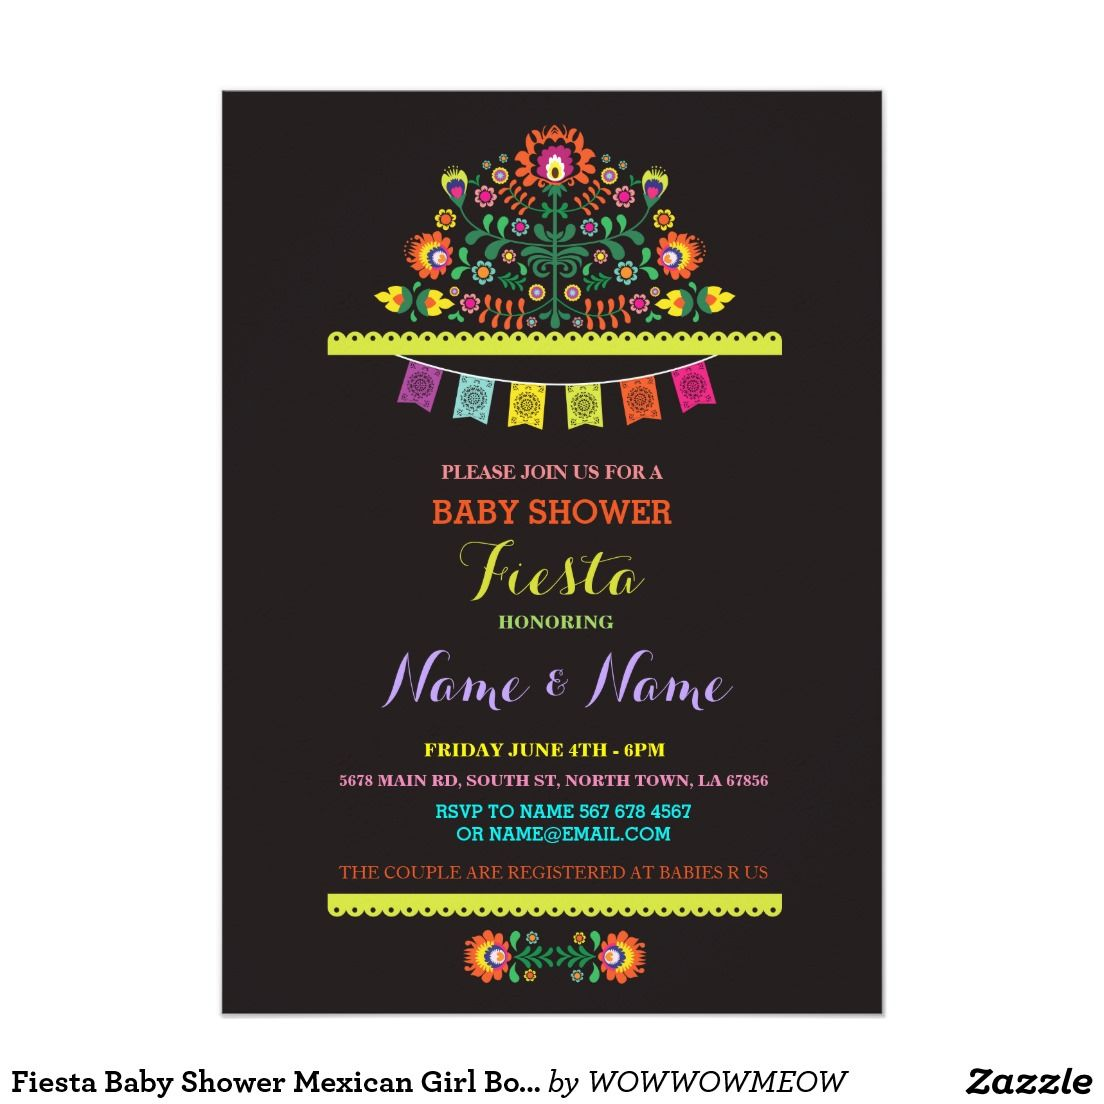 Fiesta Baby Shower Mexican Girl Boy Floral Invite | Mom and Kids ...